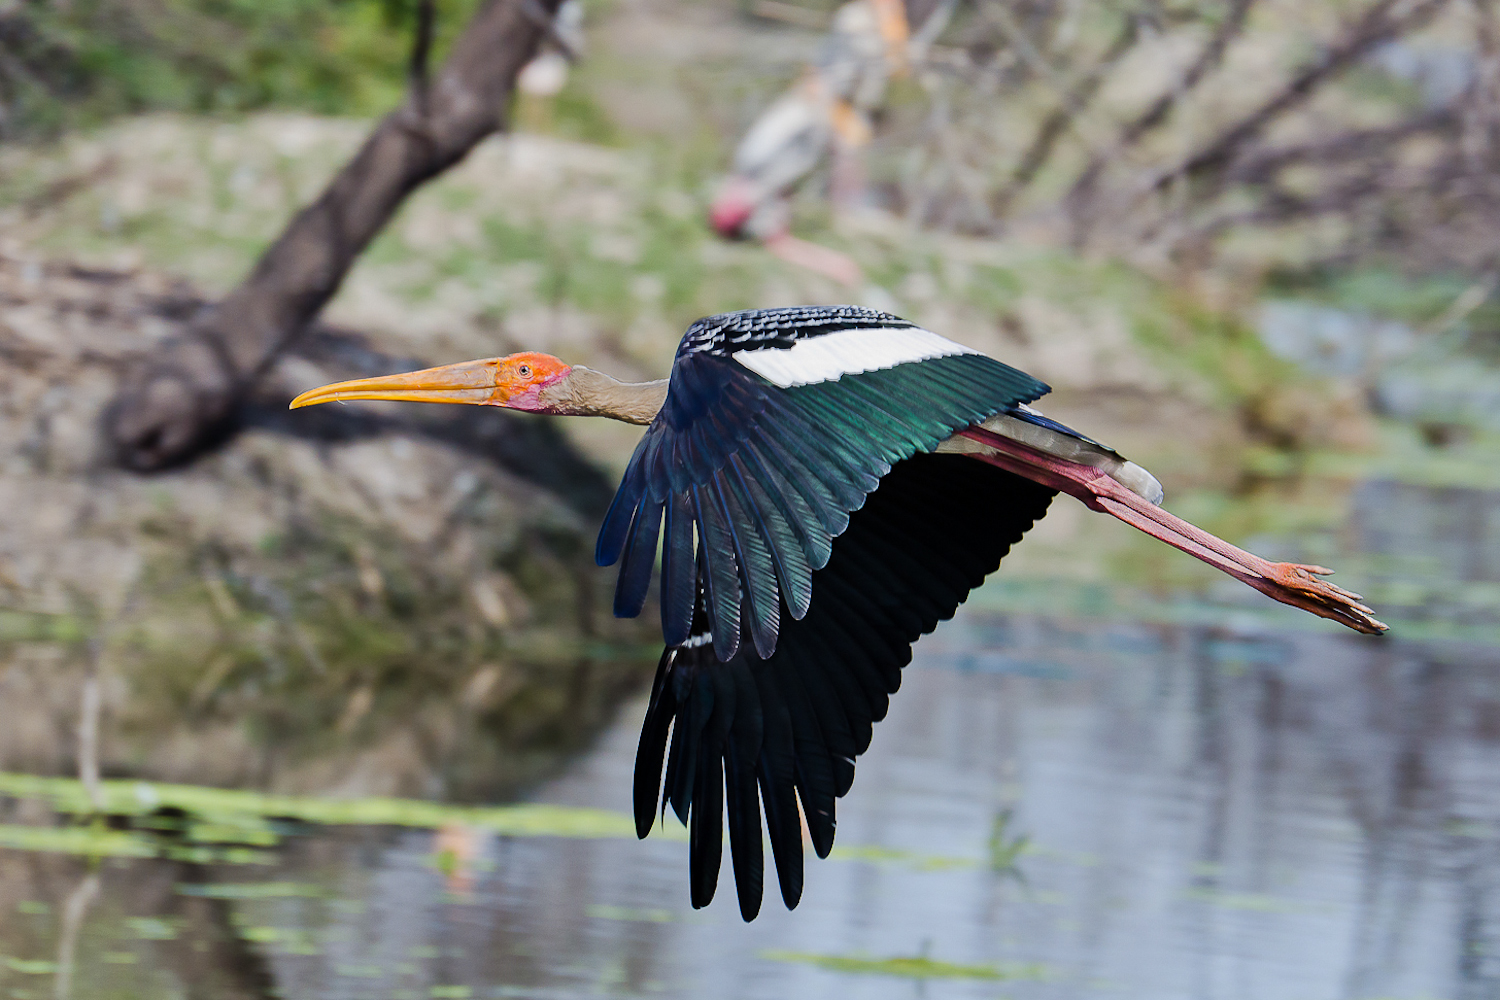 This's one of the  most common species seen at Keoladeo Ghana National Park,Bharatpur..Painted Storks are beautiful to look at because of their colors..Got this one as a full frame image!!